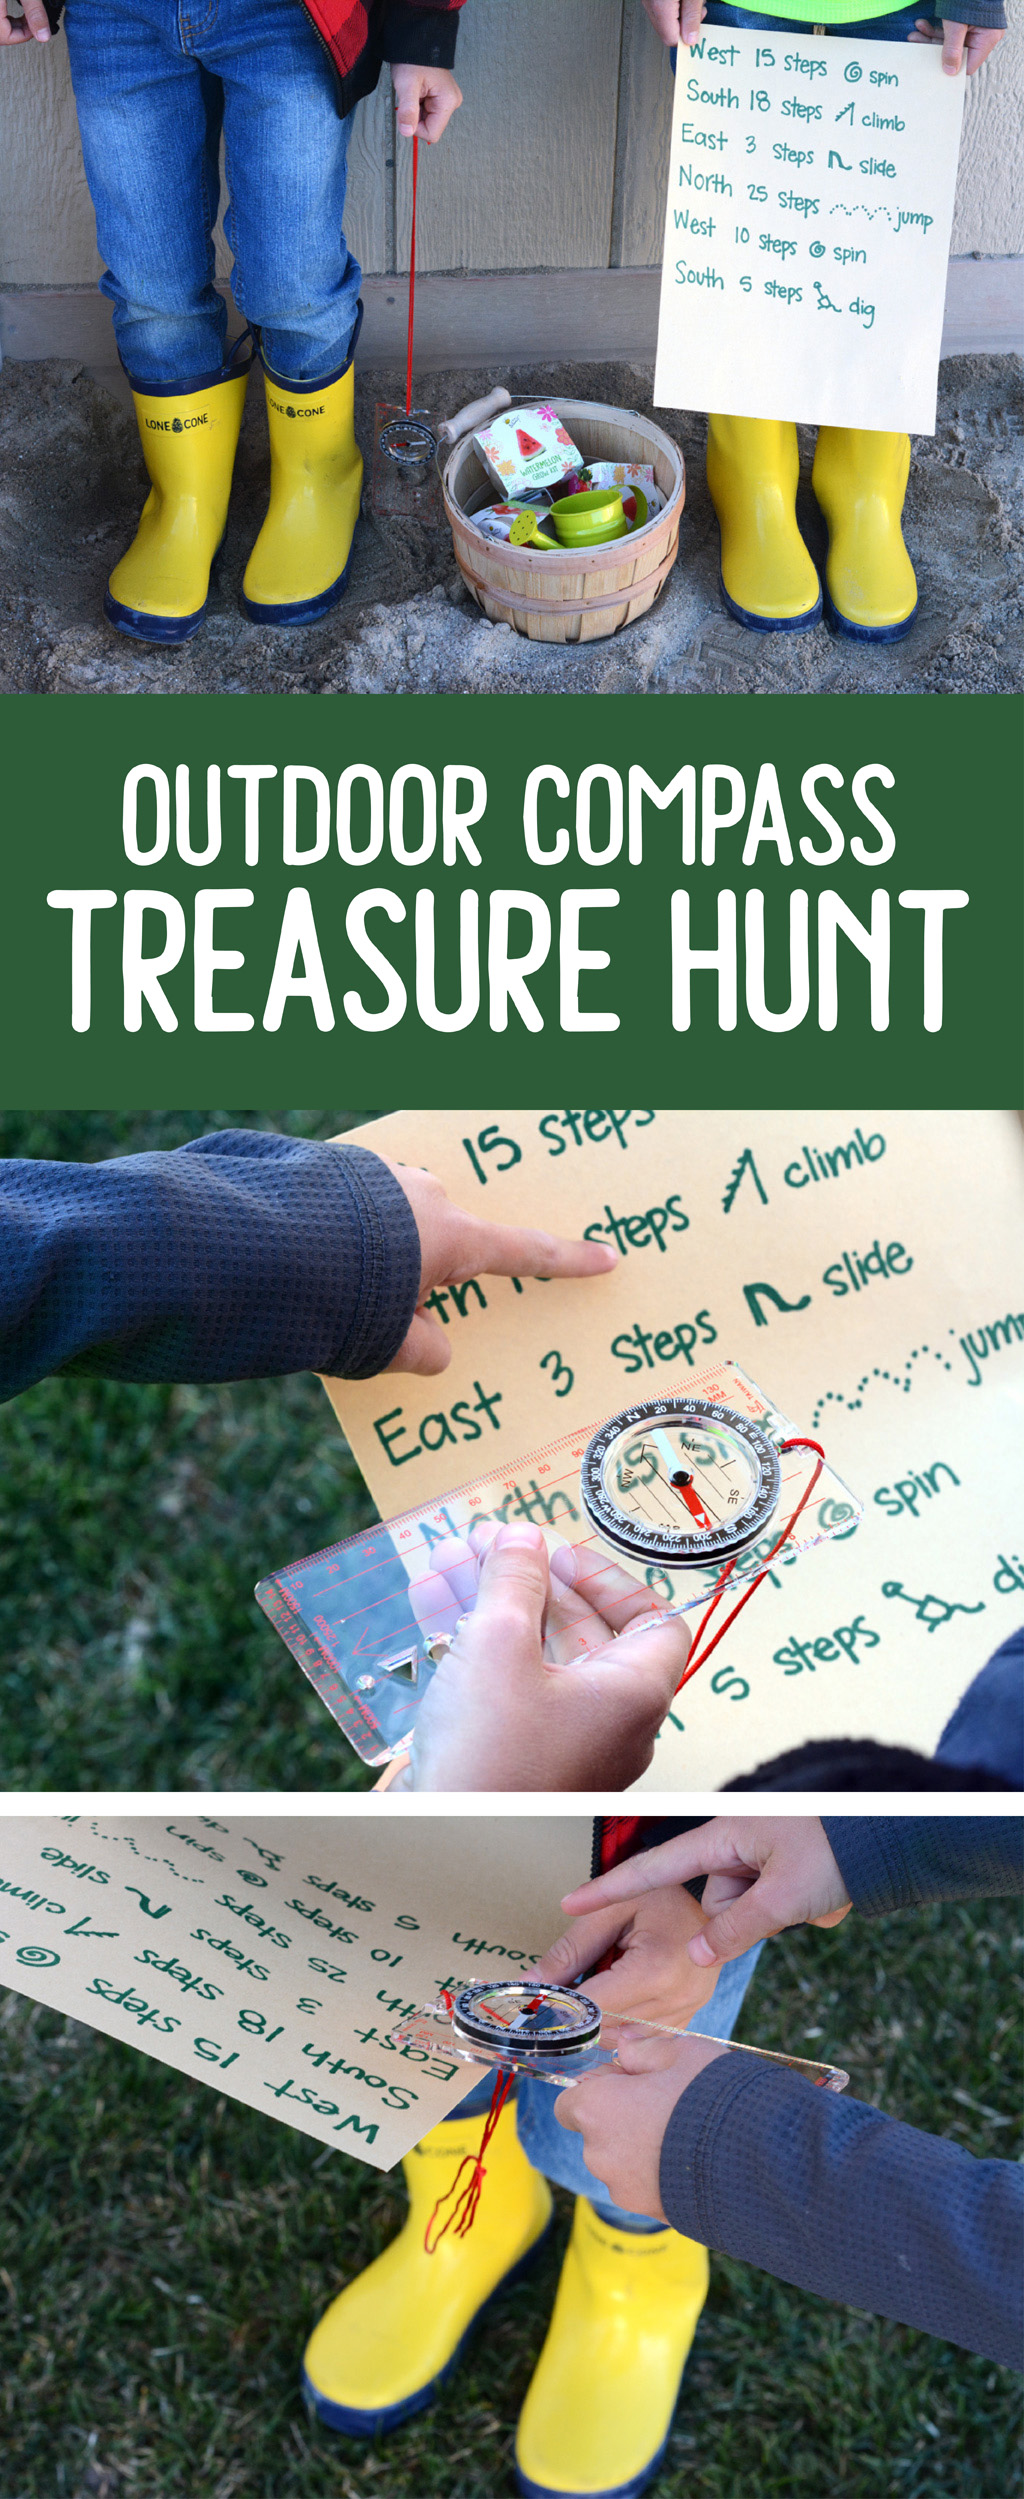 Outdoor Compass Treasure Hunt